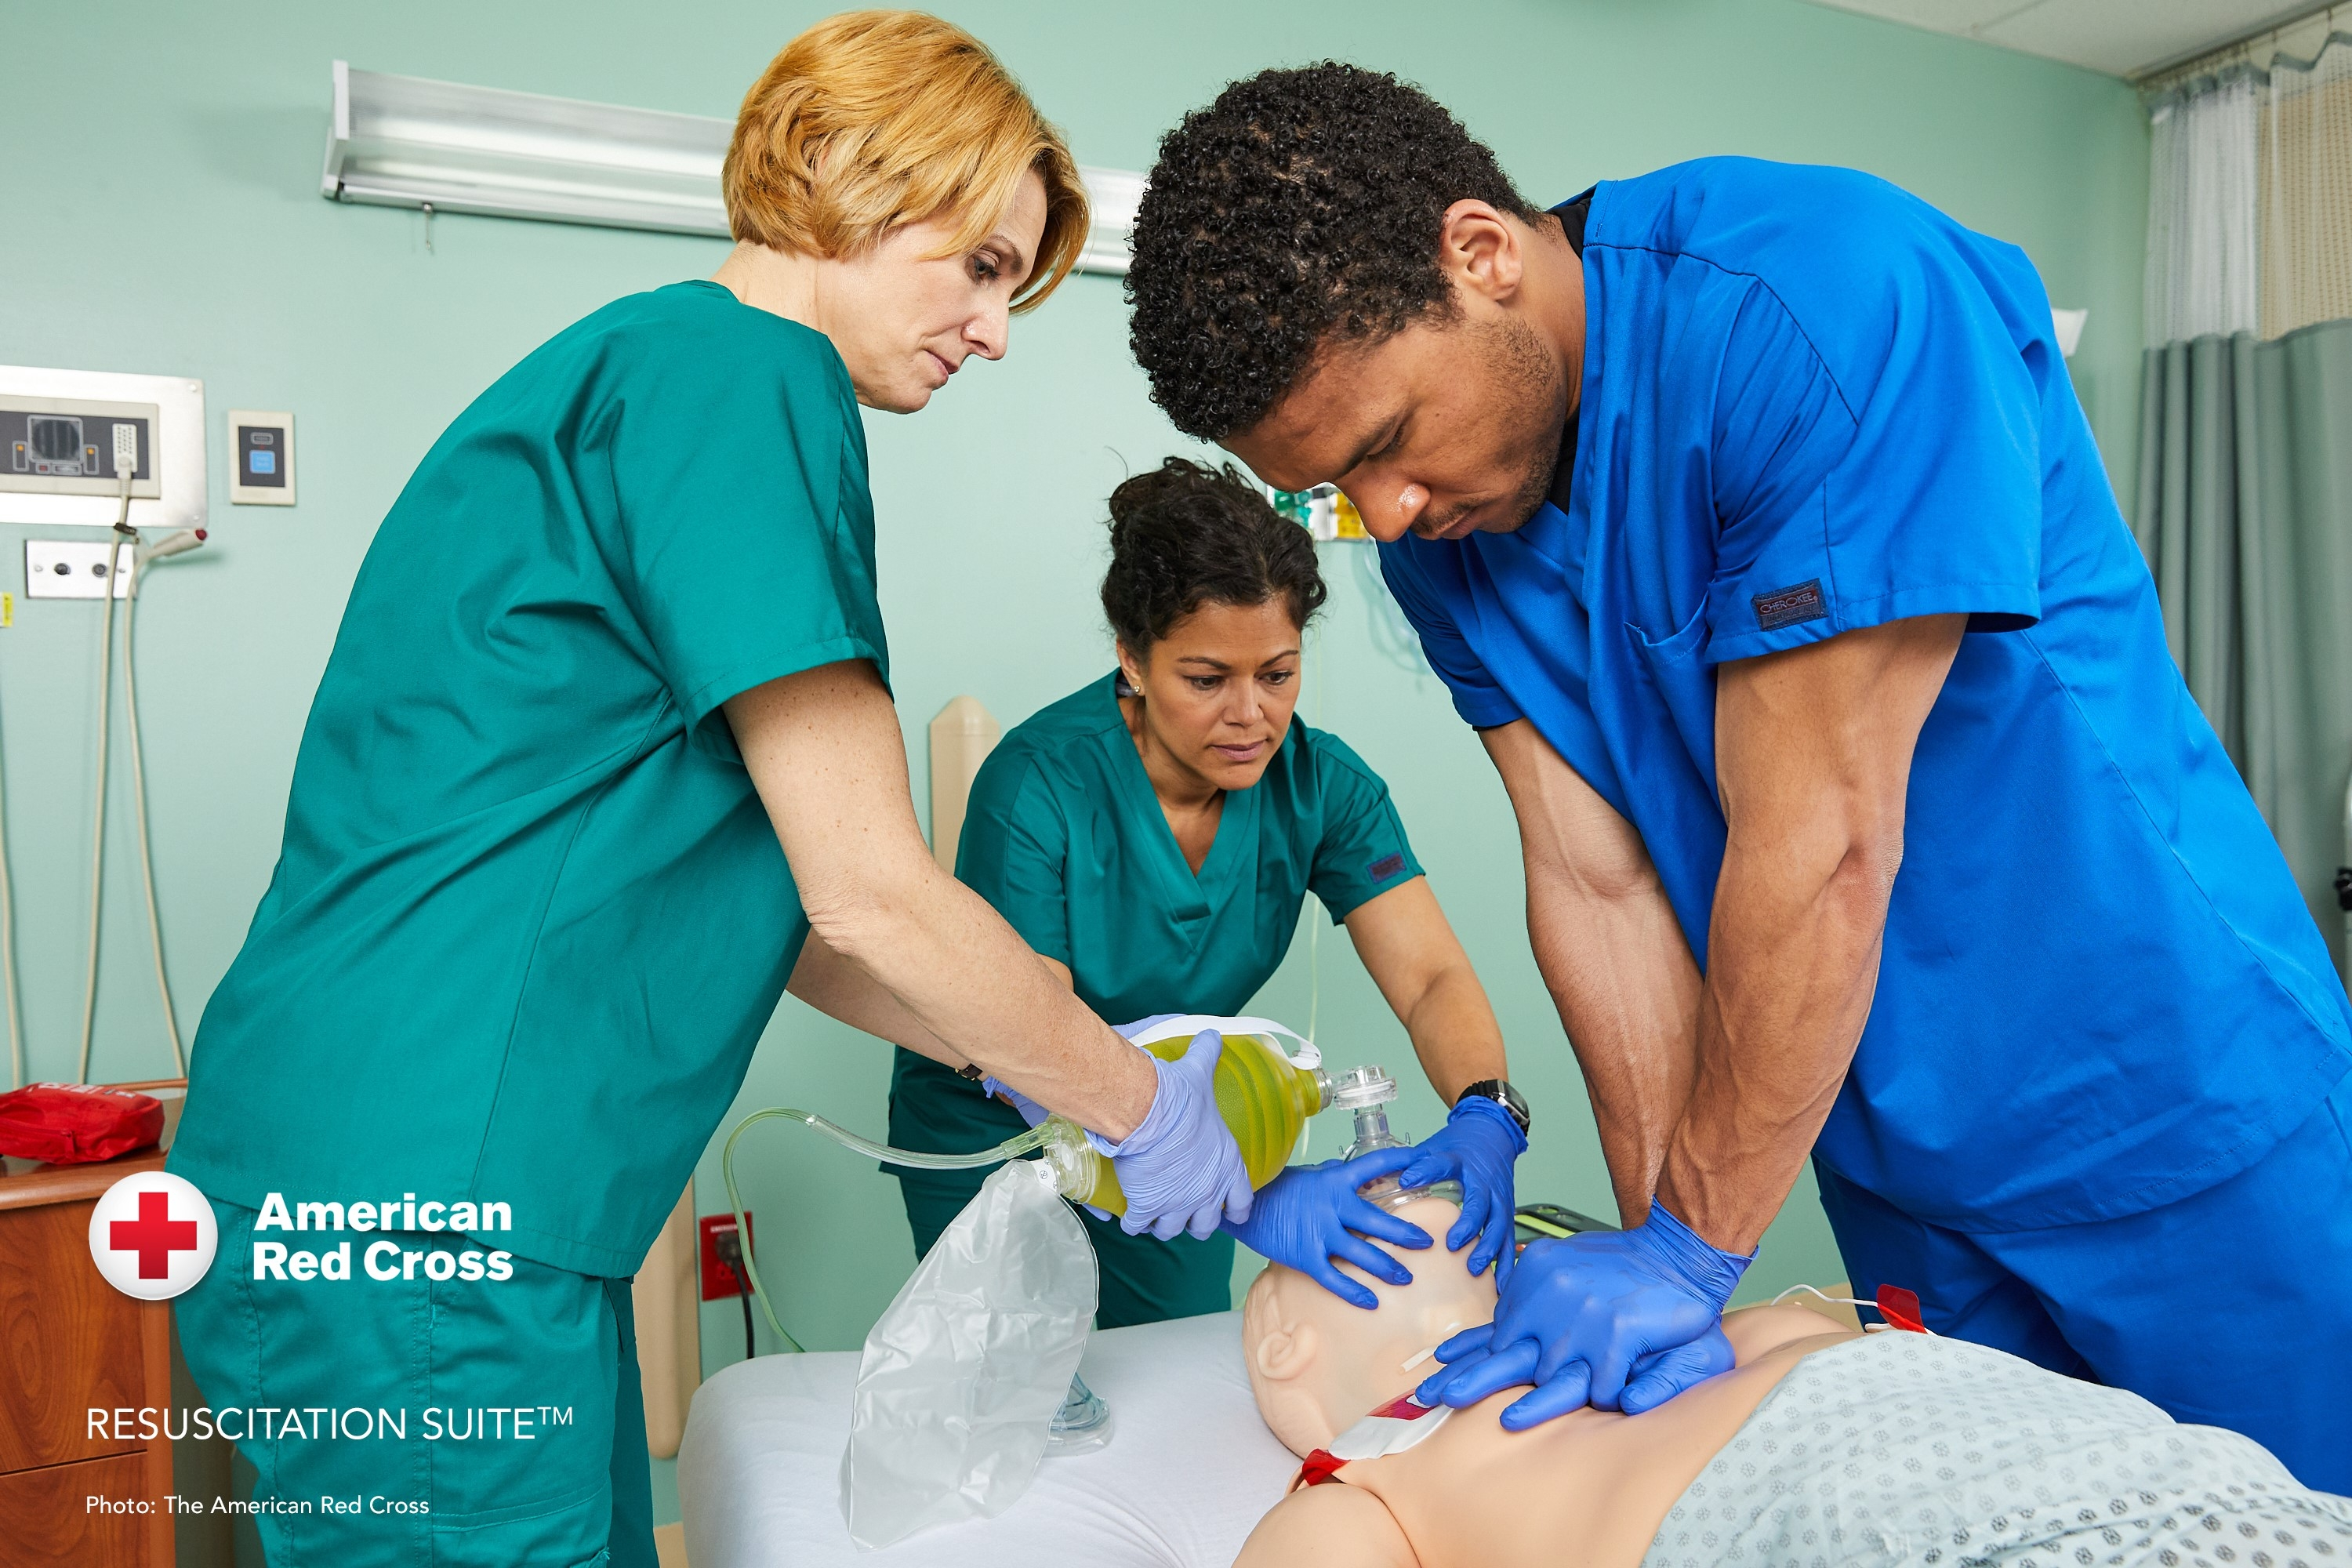 American Red Cross Launches Resuscitation Education Suite ...